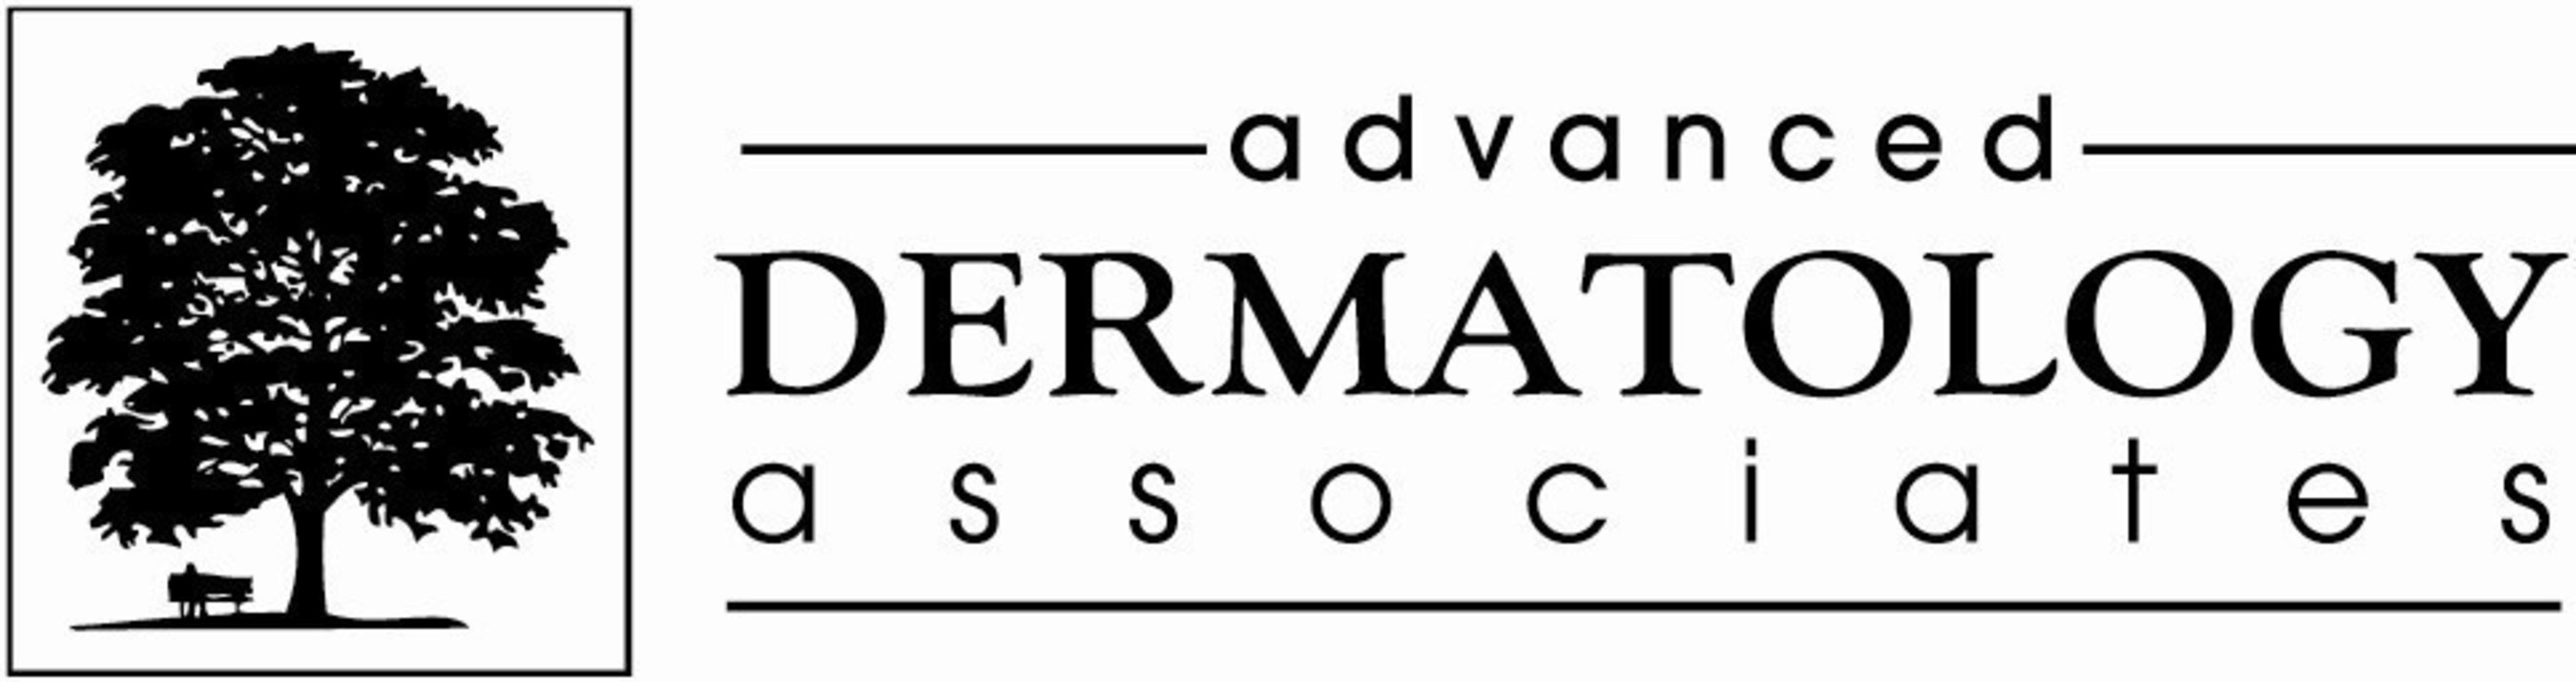 New York's Leading Dermatology Group Medical Cosmetic and Surgical Dermatology